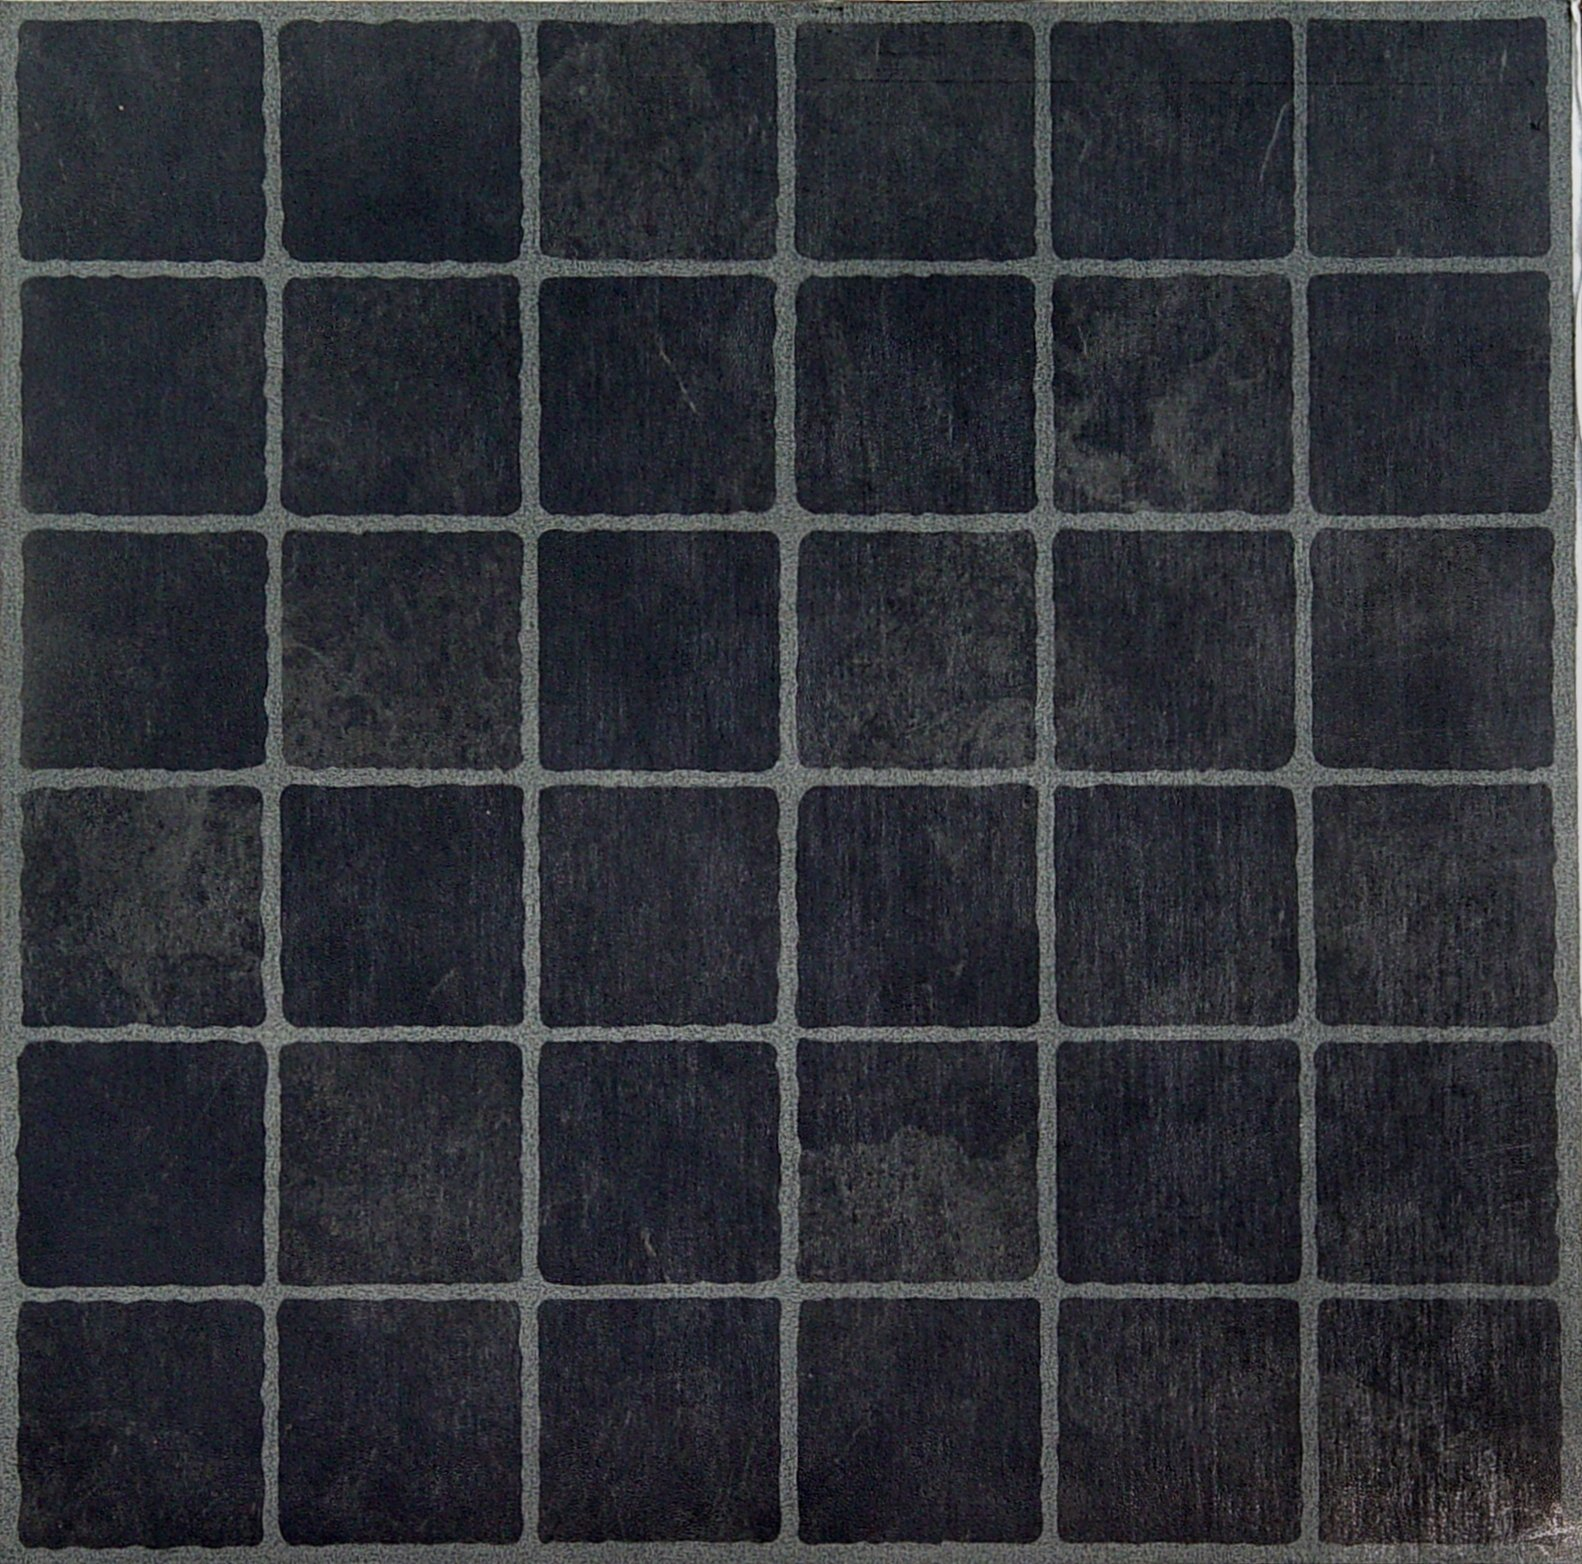 Achim Home Furnishings FTVGM33320 Nexus 12-Inch Vinyl Tile, Geo Dark Slate Checker Board, 20-Pack